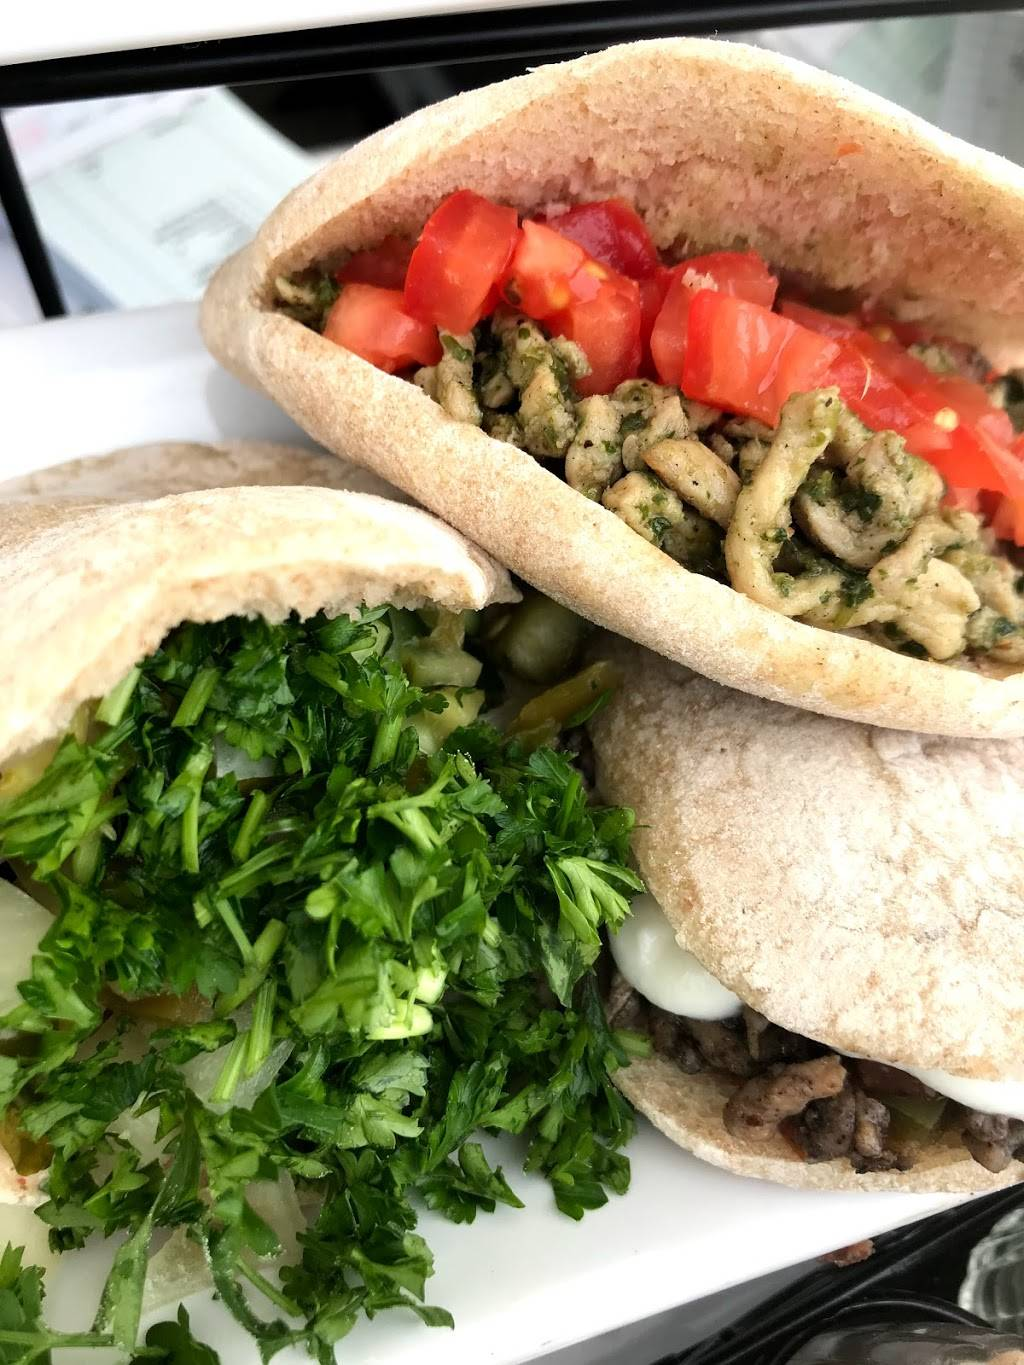 Garlic and Tahini Egyptian Kitchen - Delivery & Carry Out Only | meal delivery | 9932 Mesa Rim Rd, San Diego, CA 92121, USA | 8589399930 OR +1 858-939-9930